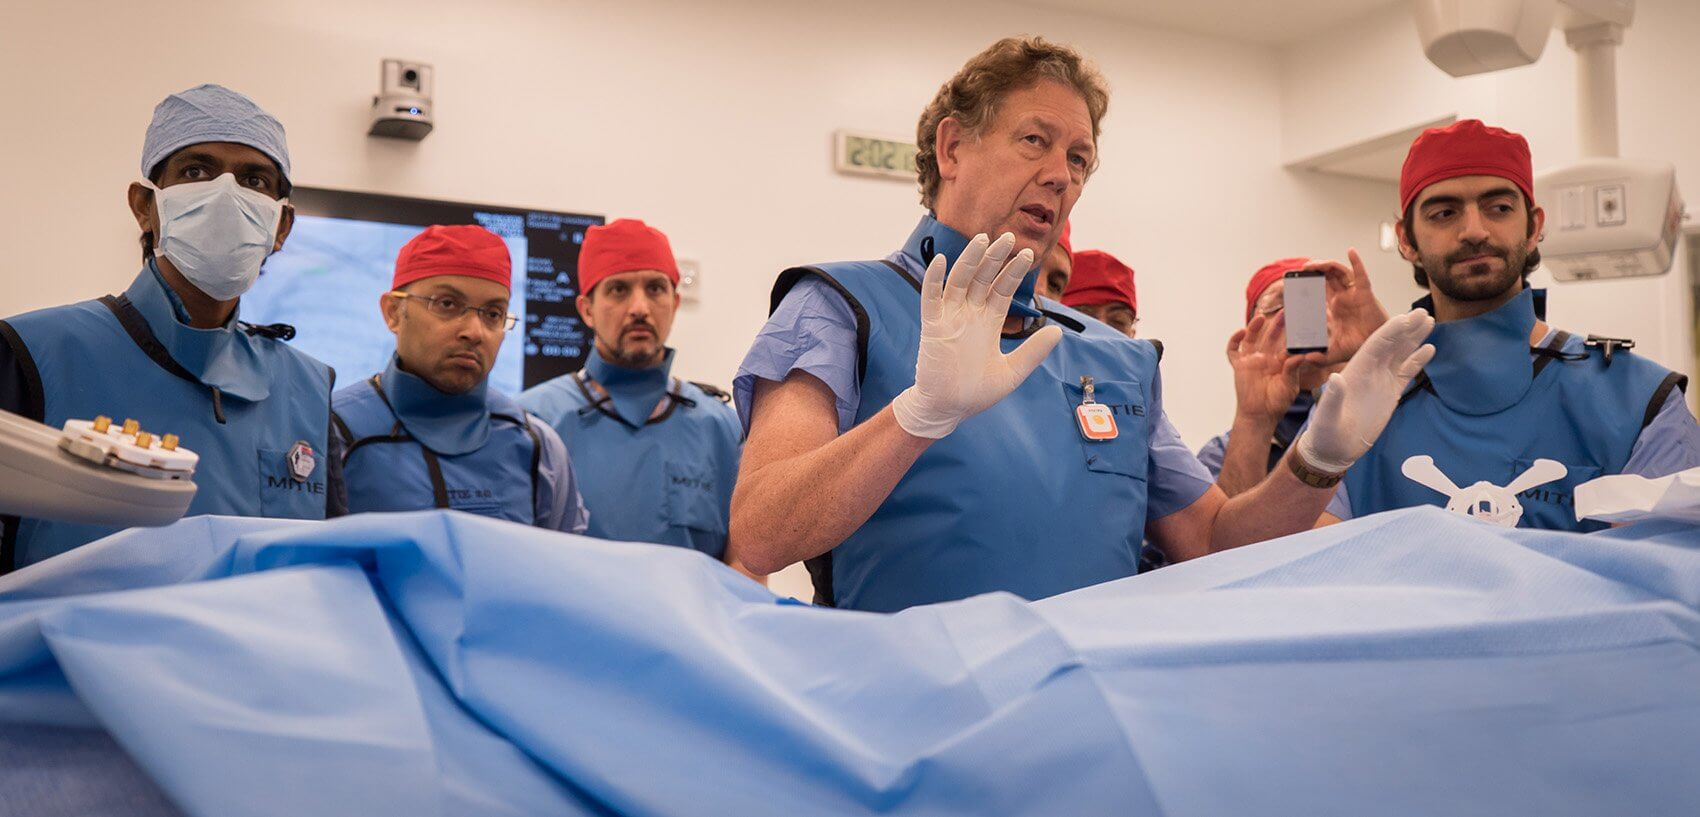 Alan B. Lumsden, M.D., demonstrates a rotational fluoroscopic CT machine used to create 3D images.